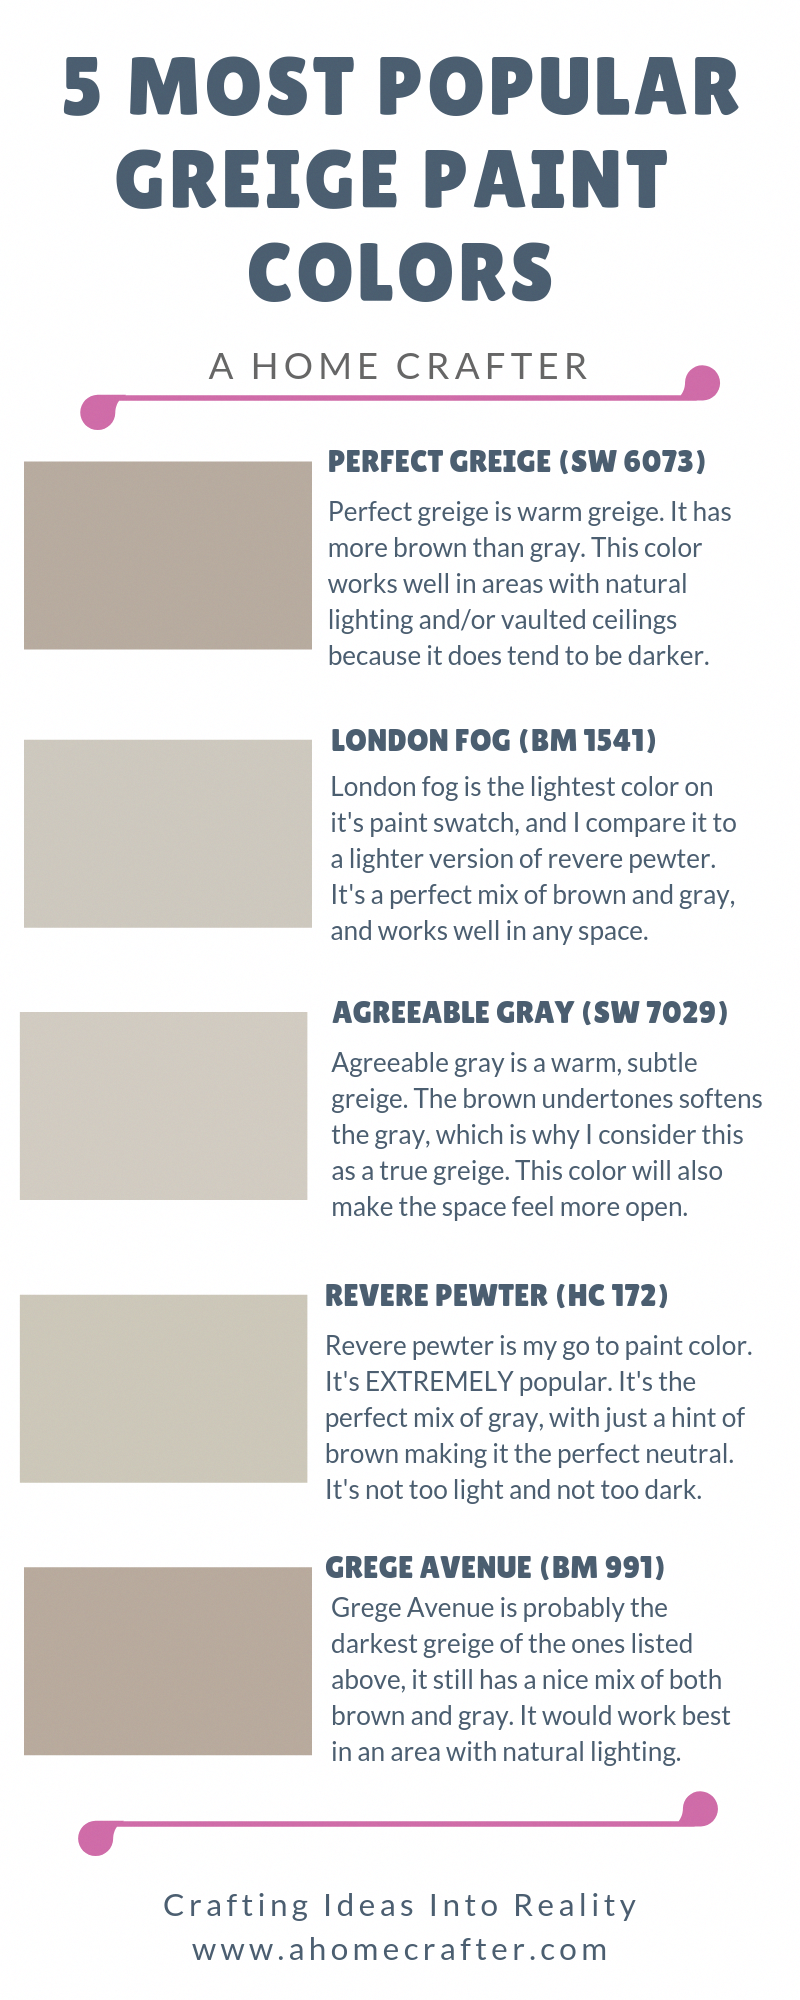 A Guide to Greige Paint Colors: The Perfect Neutral - A Home Crafter